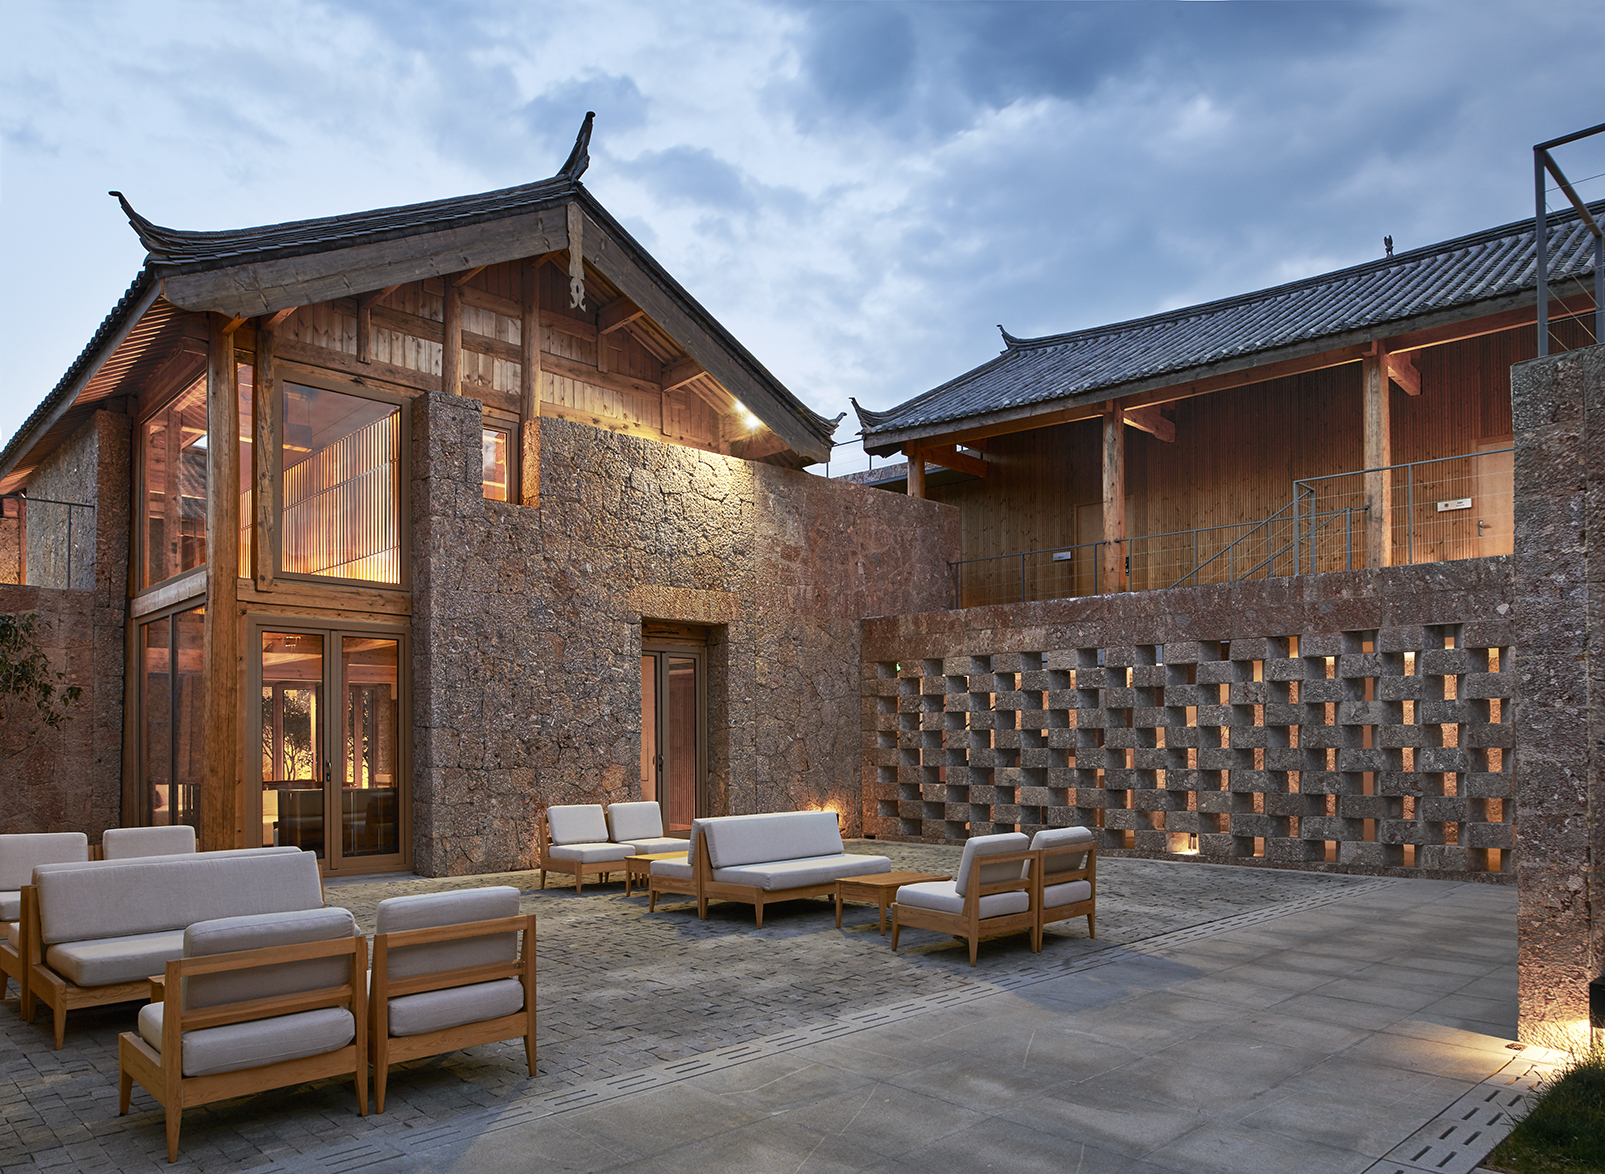 Tsingpu Baisha Retreat / Tsutsumi & Associates